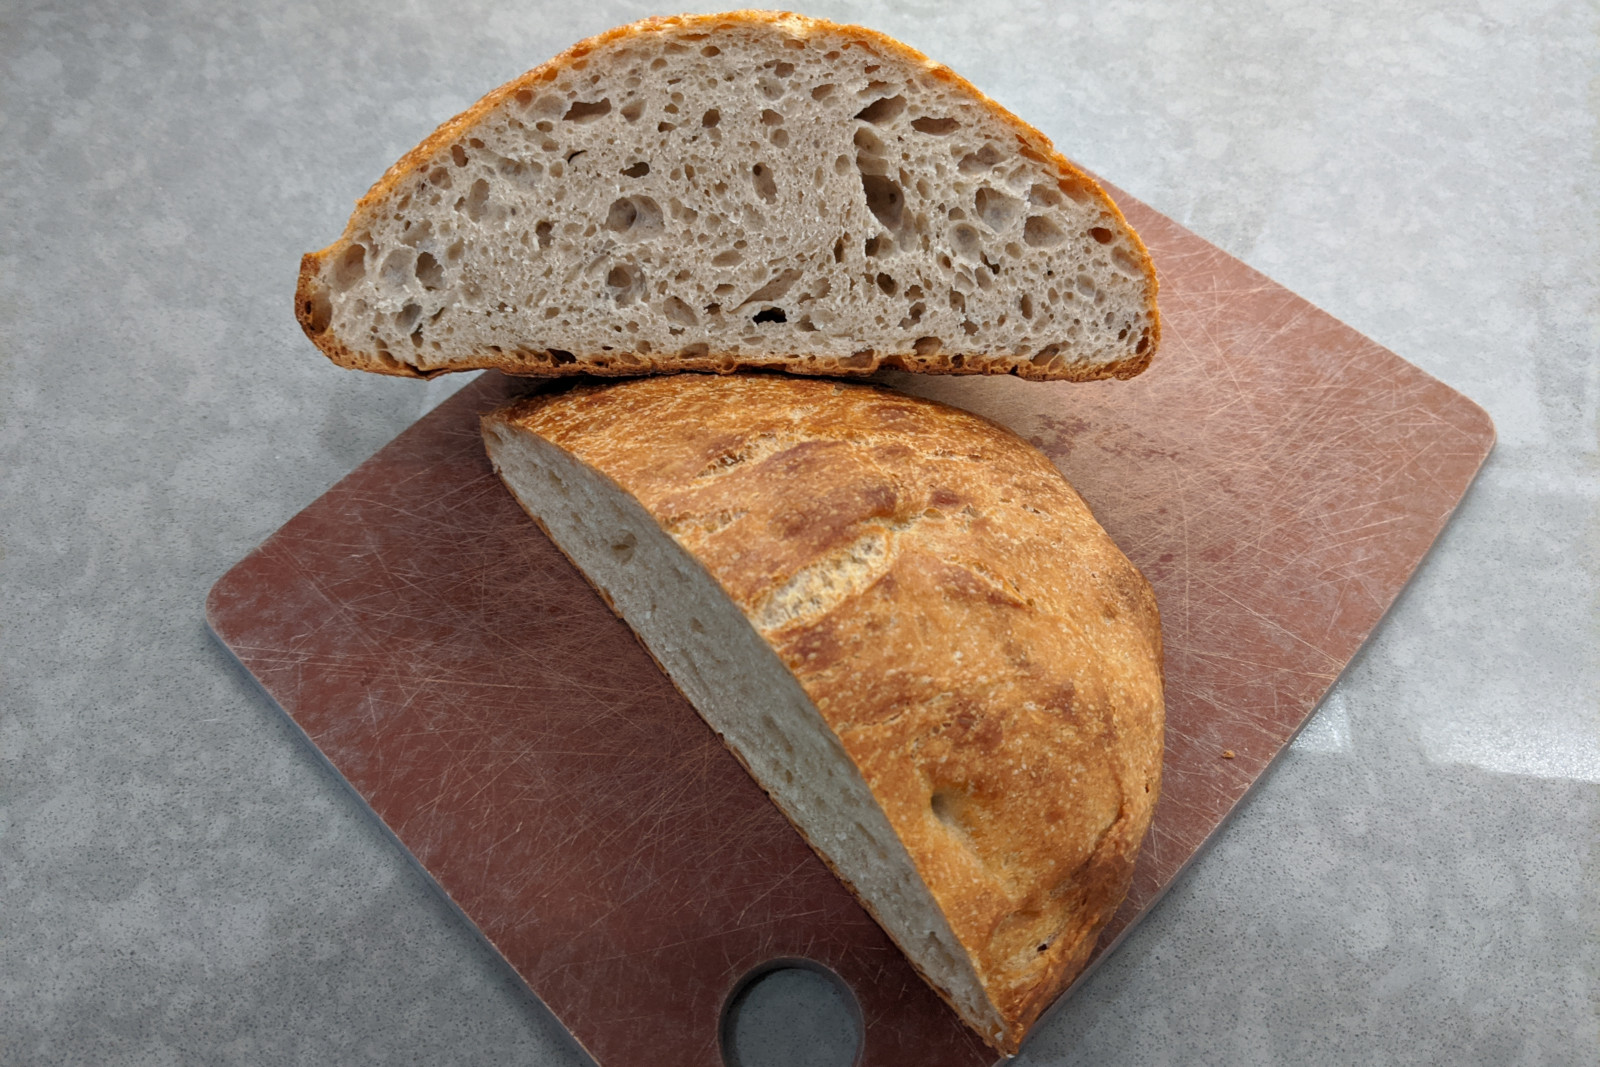 Cross-section of a loaf of no-knead bread